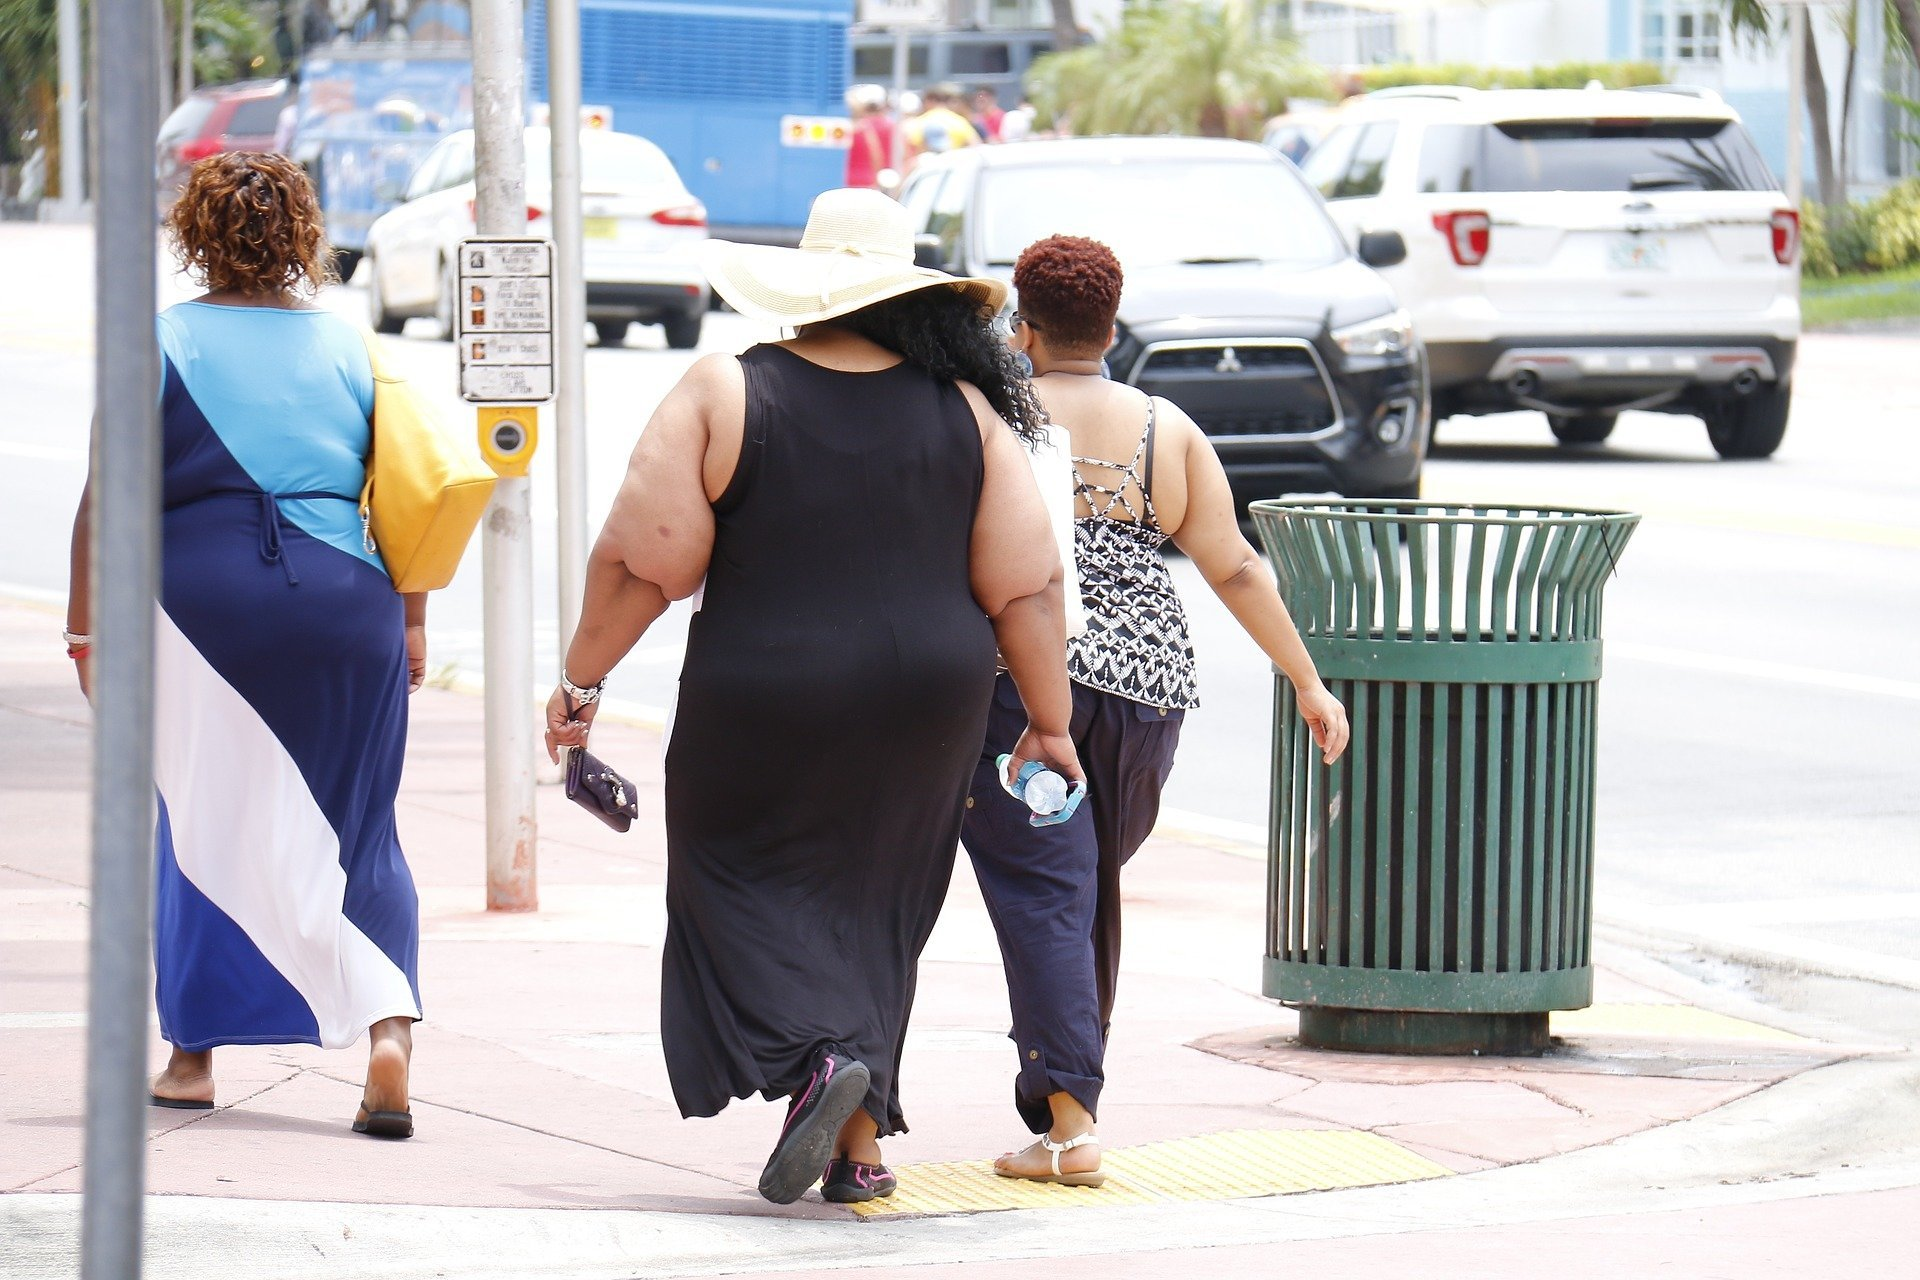 VAT fat may cause pathogenic obesity